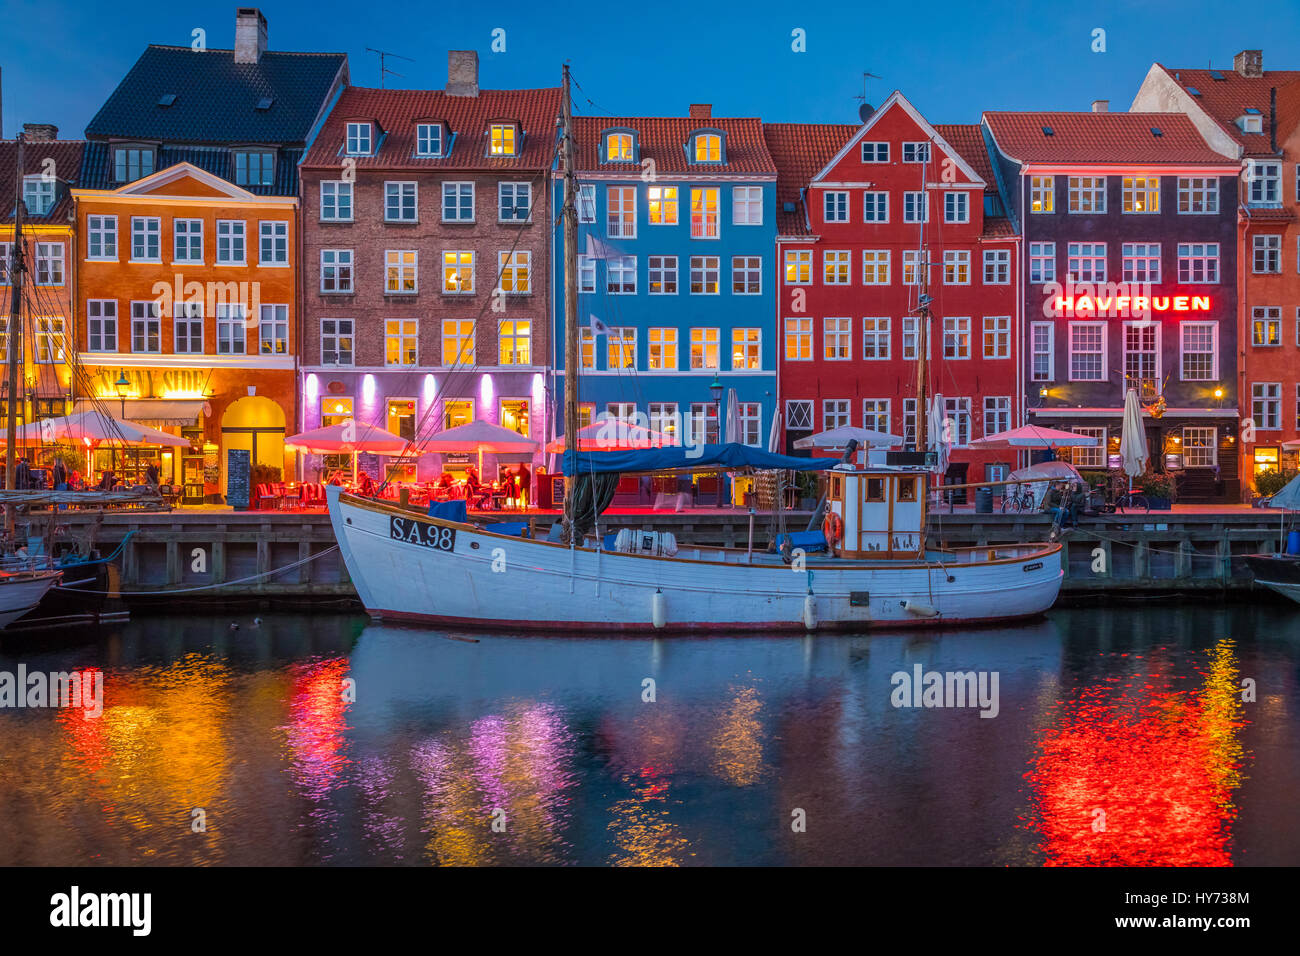 Nyhavn is a colourful 17th century waterfront, canal and popular entertainment district in Copenhagen, Denmark. Stock Photo